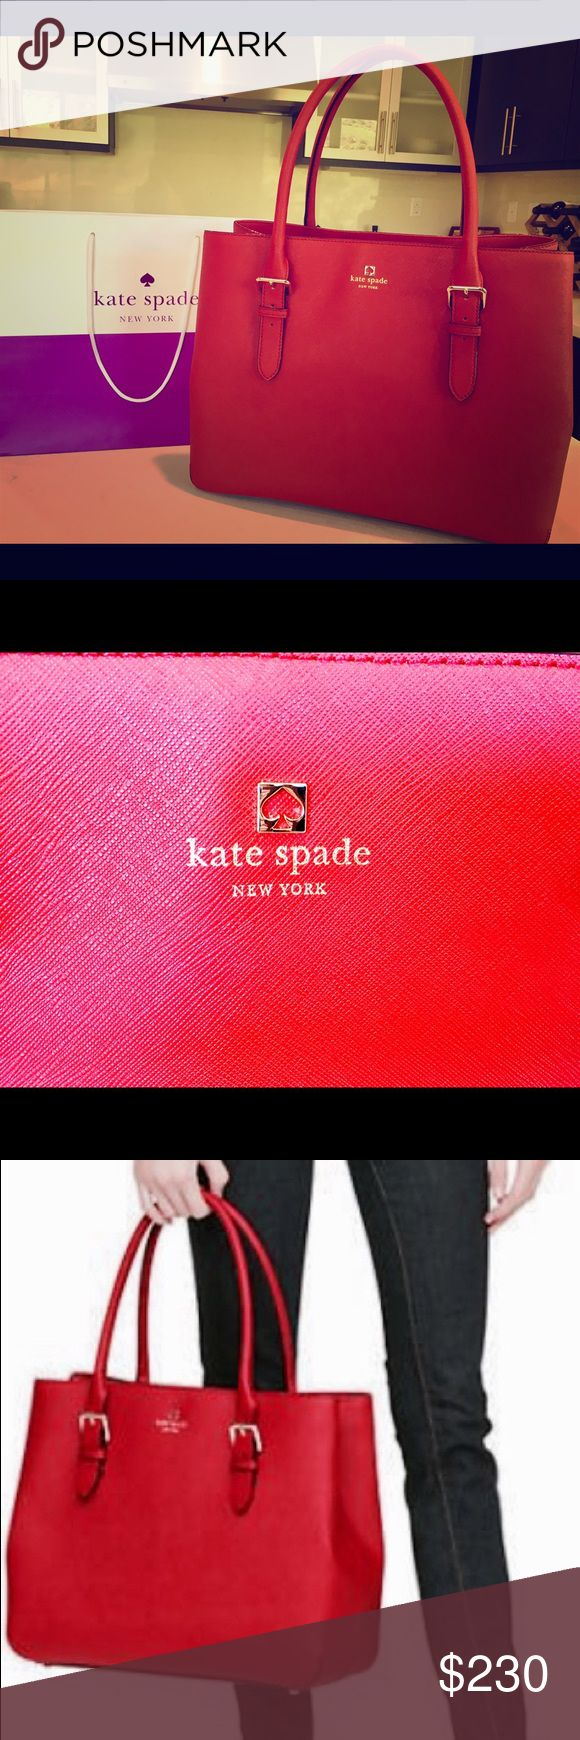 "Kate Spade cove street airel red Authentic Kate Spade cove street airel in pillow box red. Cross hatched leather with matching trim. Custom woven lining with 14-karat light gold plated hardware. Style #: WKRU2326. Adjustable shoulder straps with dividing zipper pocket, double slide pockets and interior zipper pocket. 11.9""h x 15""w x 6.2""d, drop length: 8.26""  SOLD OUT on Kate Spade ♠️ online shop. Sold $349.99 @ amazon. kate spade Bags Totes"